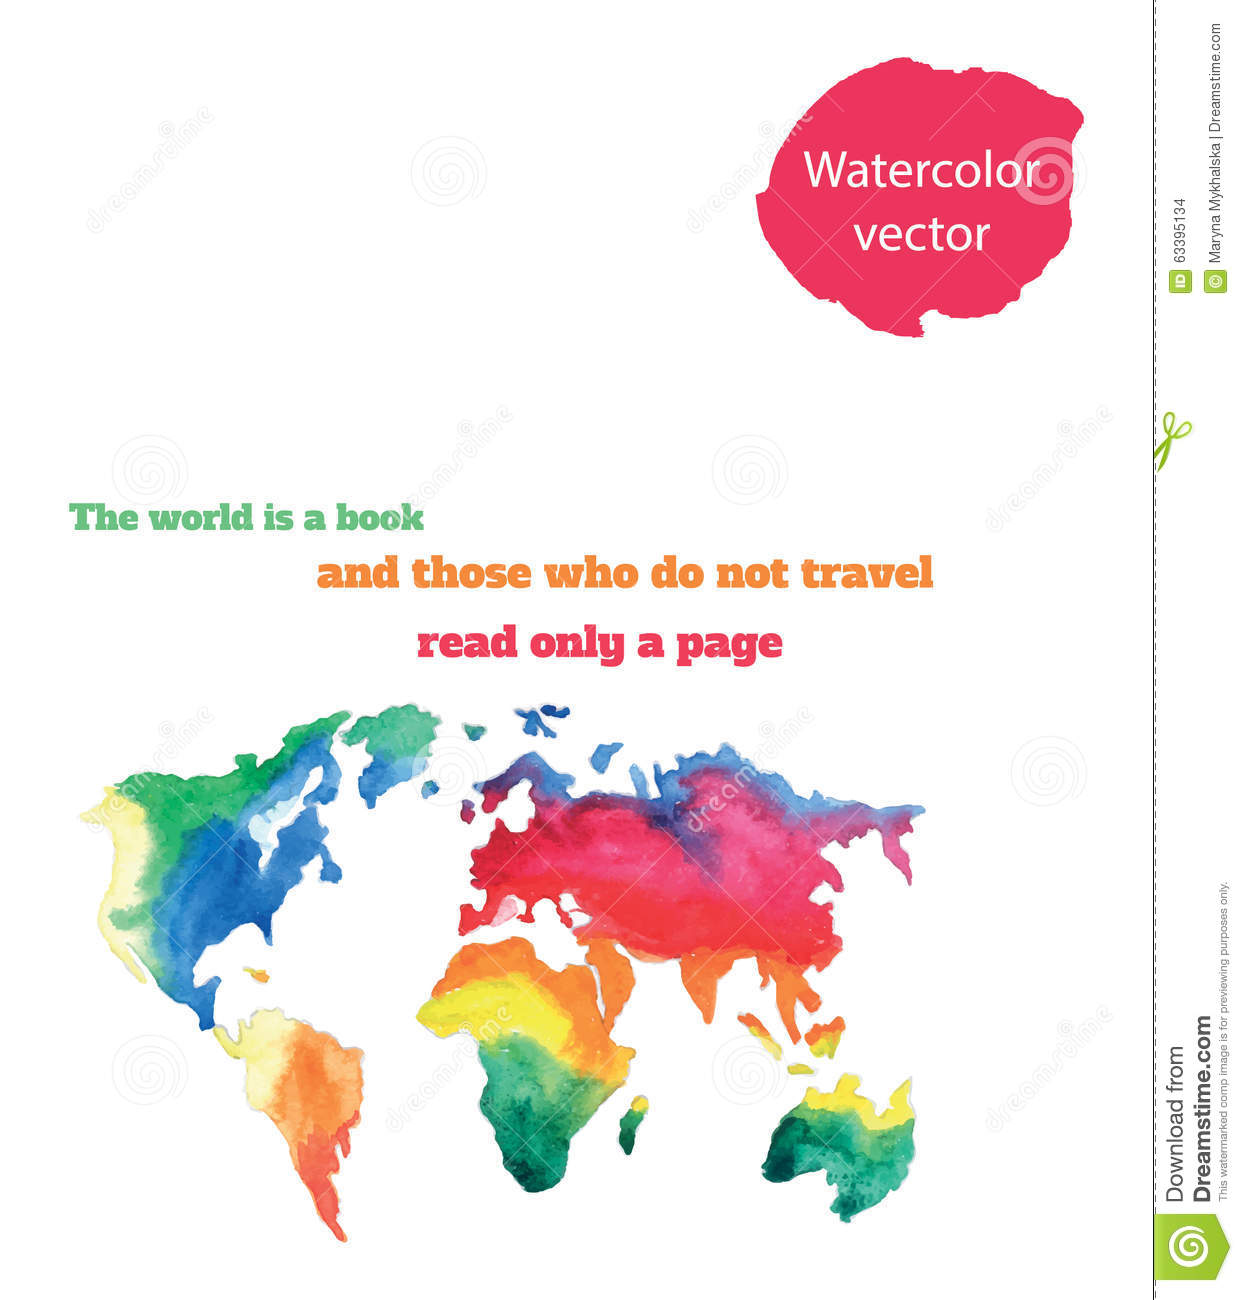 Varicolored watercolour world map stock vector illustration of varicolored watercolour world map royalty free vector download varicolored gumiabroncs Image collections